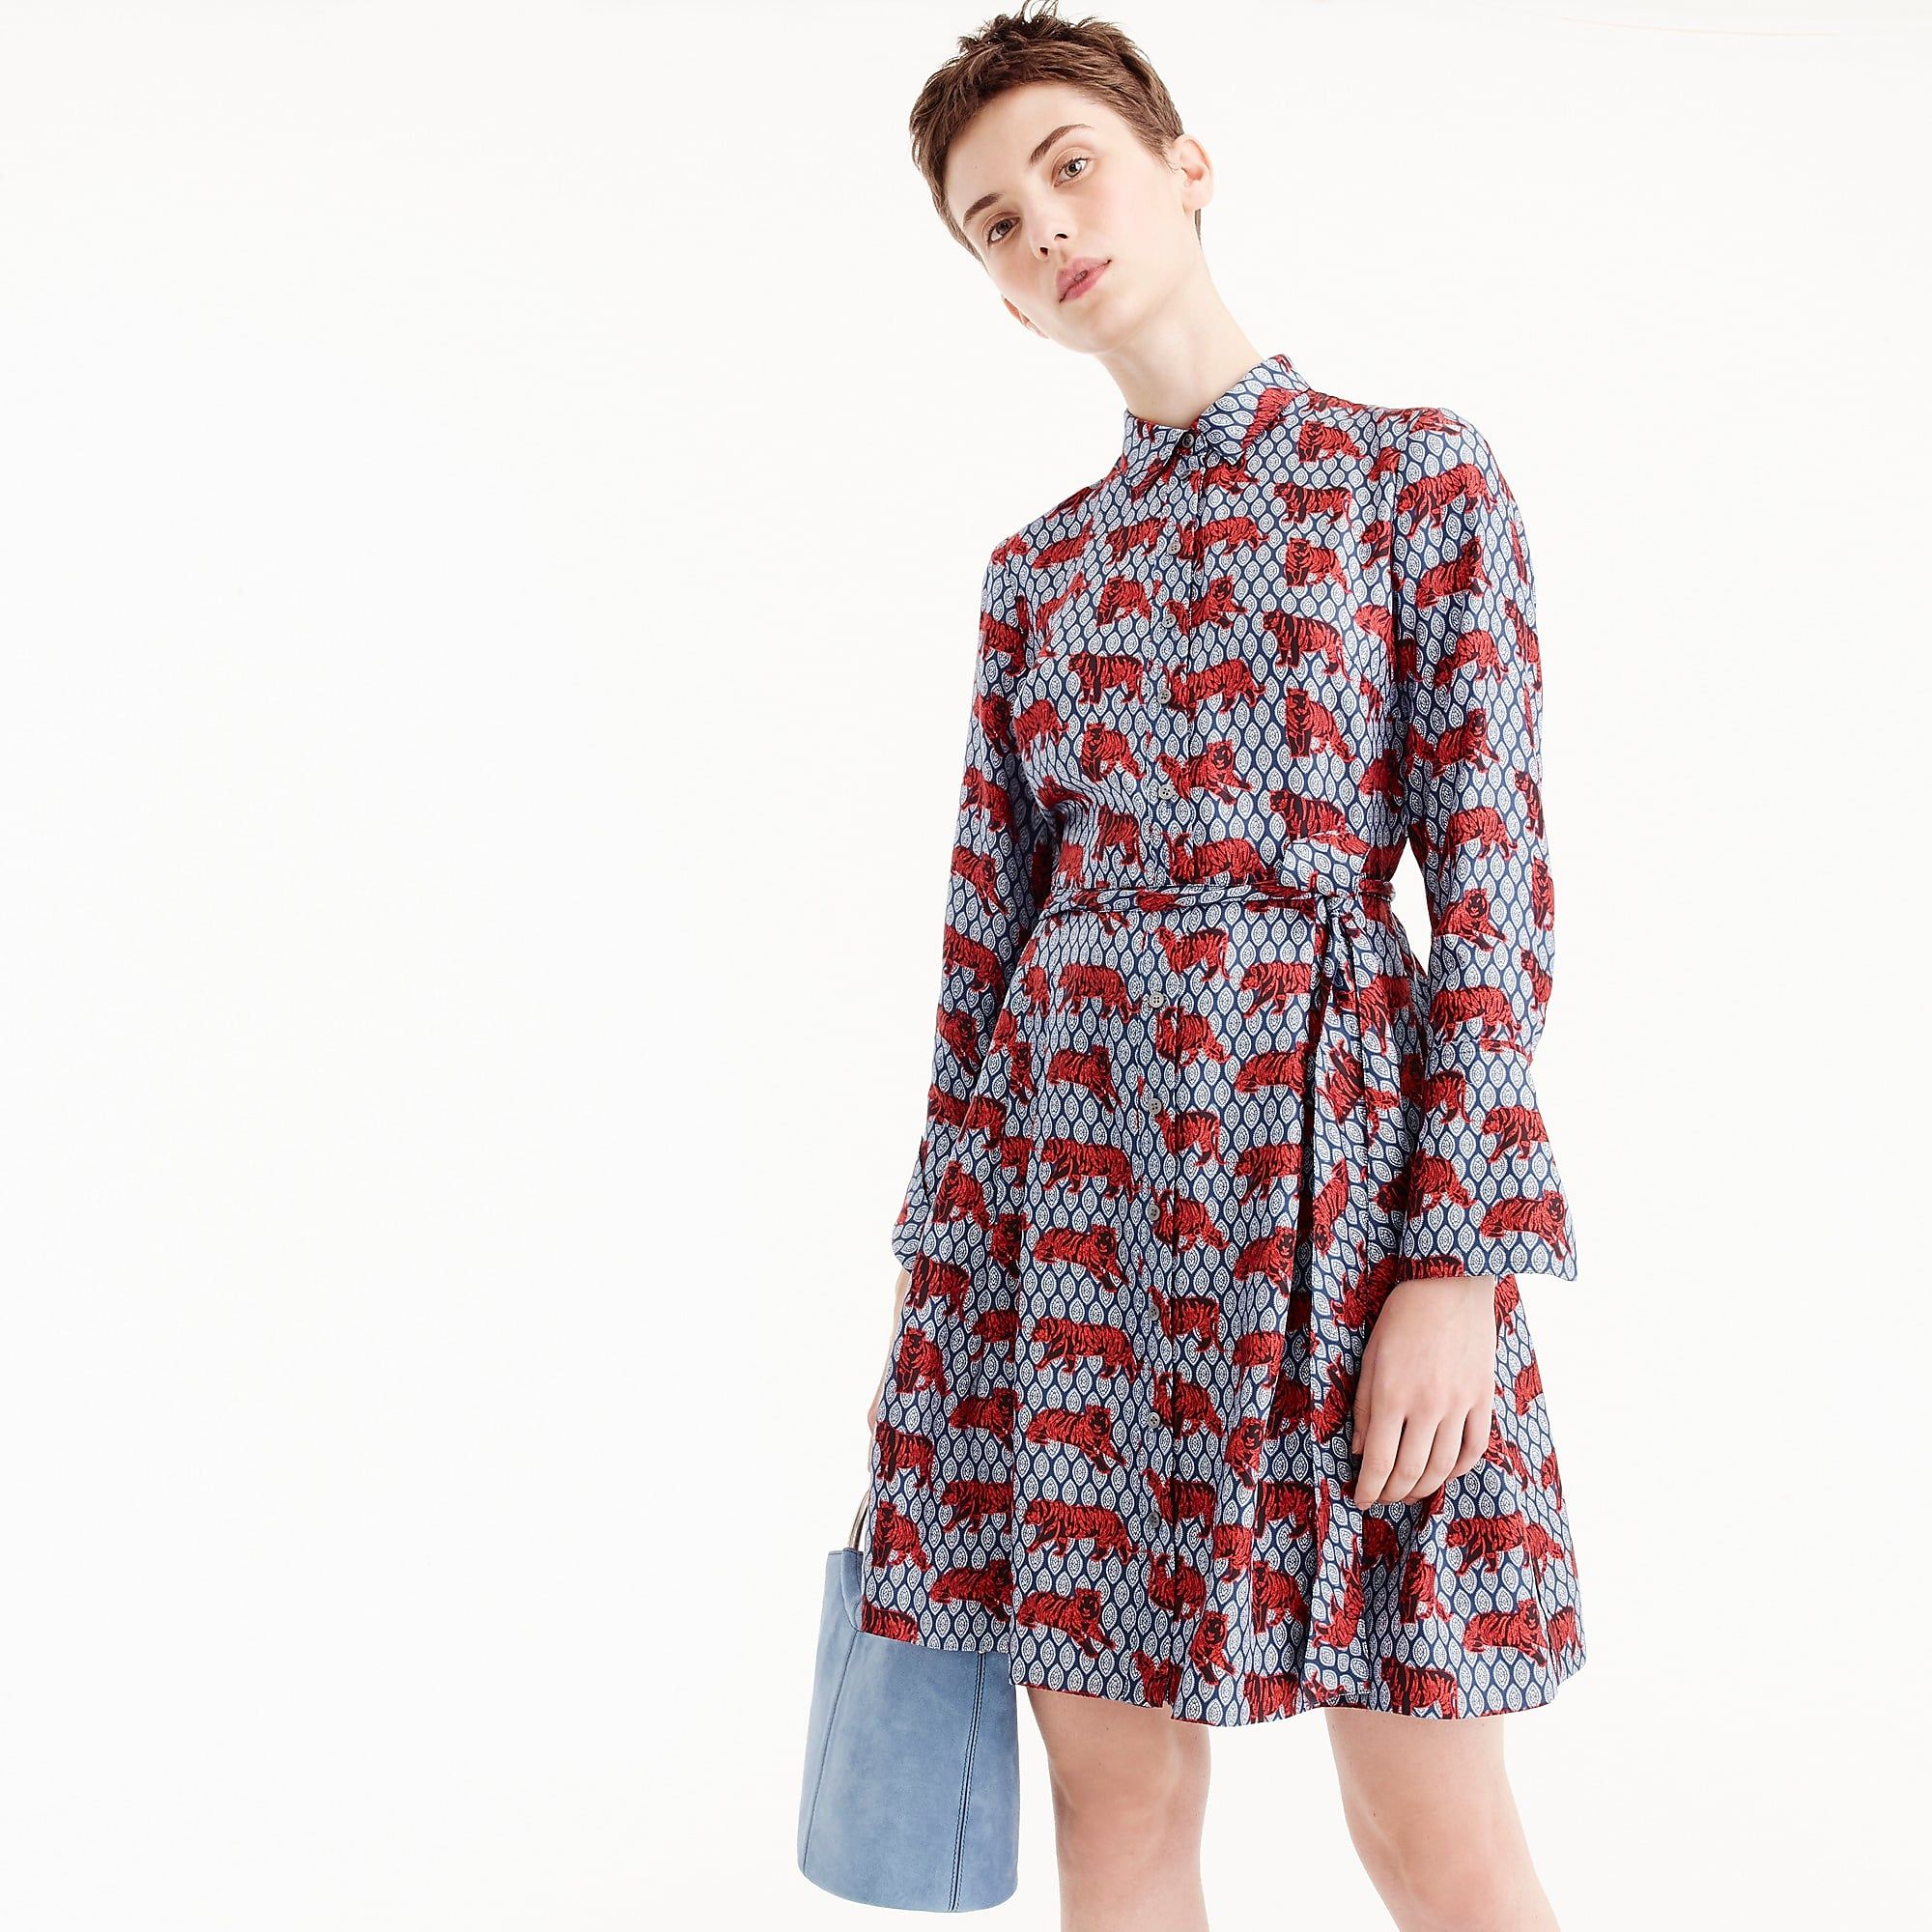 933cc38d805a7 Collection silk twill shirtdress in roaming tiger print